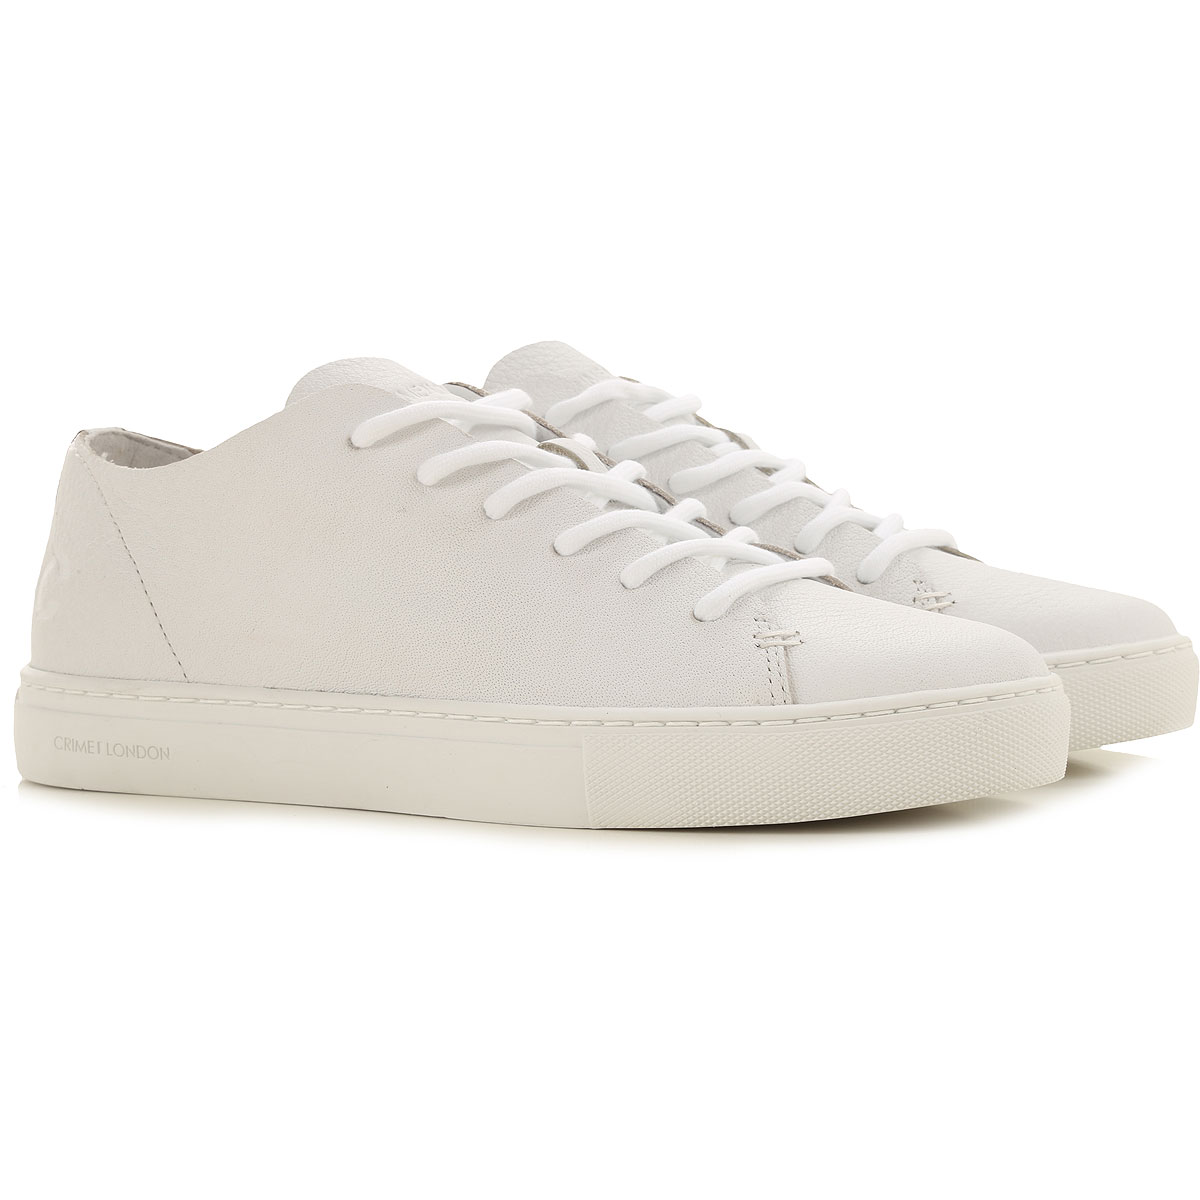 Crime Sneakers for Women On Sale, White, Leather, 2019, 10 6 7 8 9